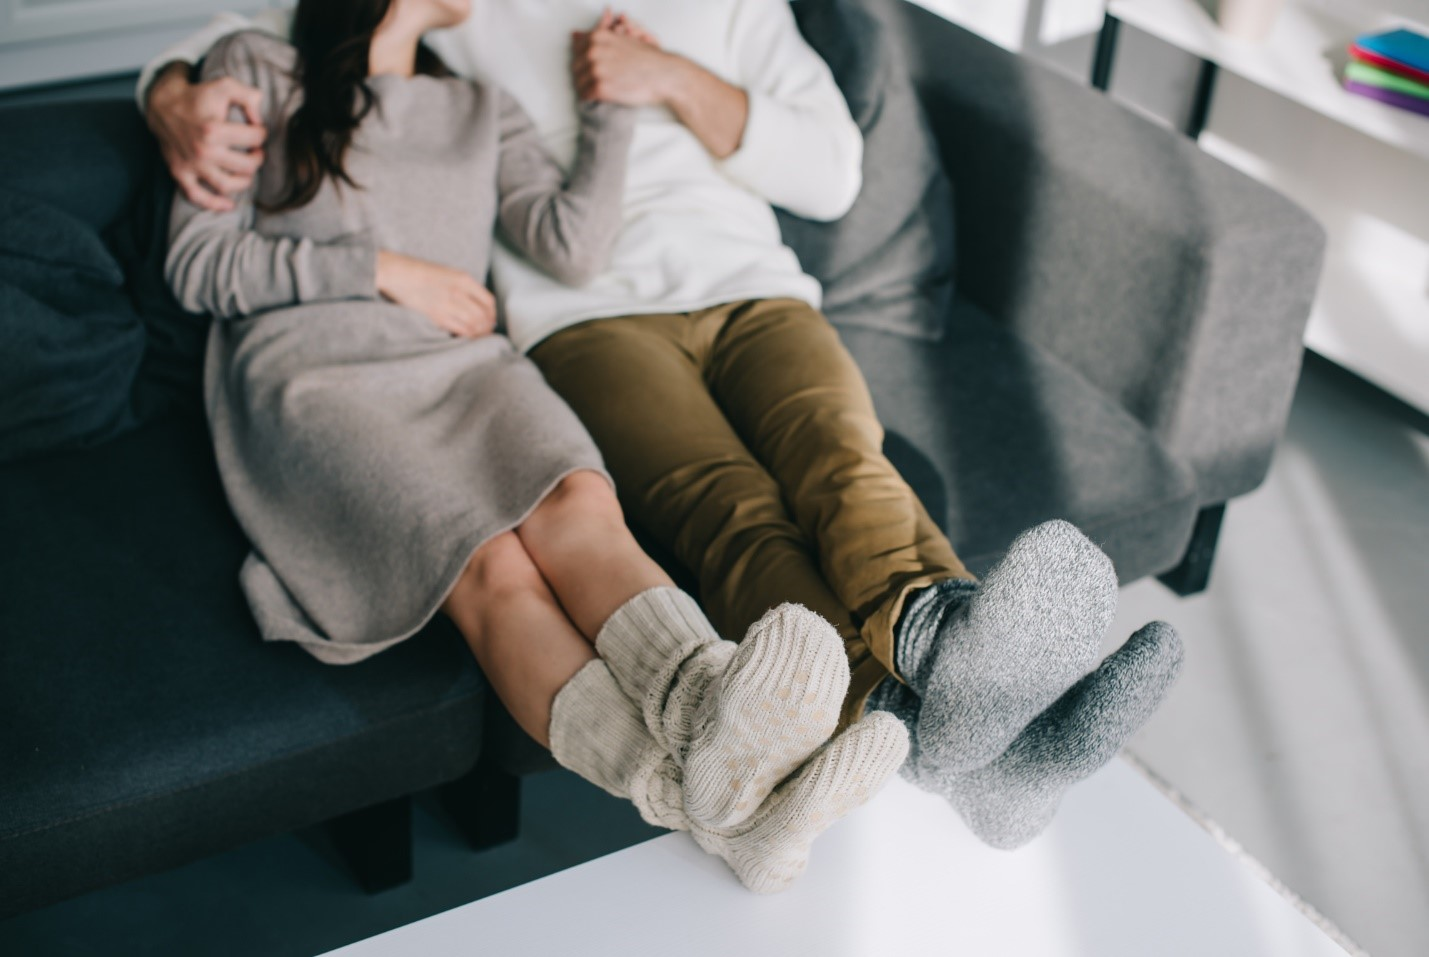 Two people on couch with socks on feet